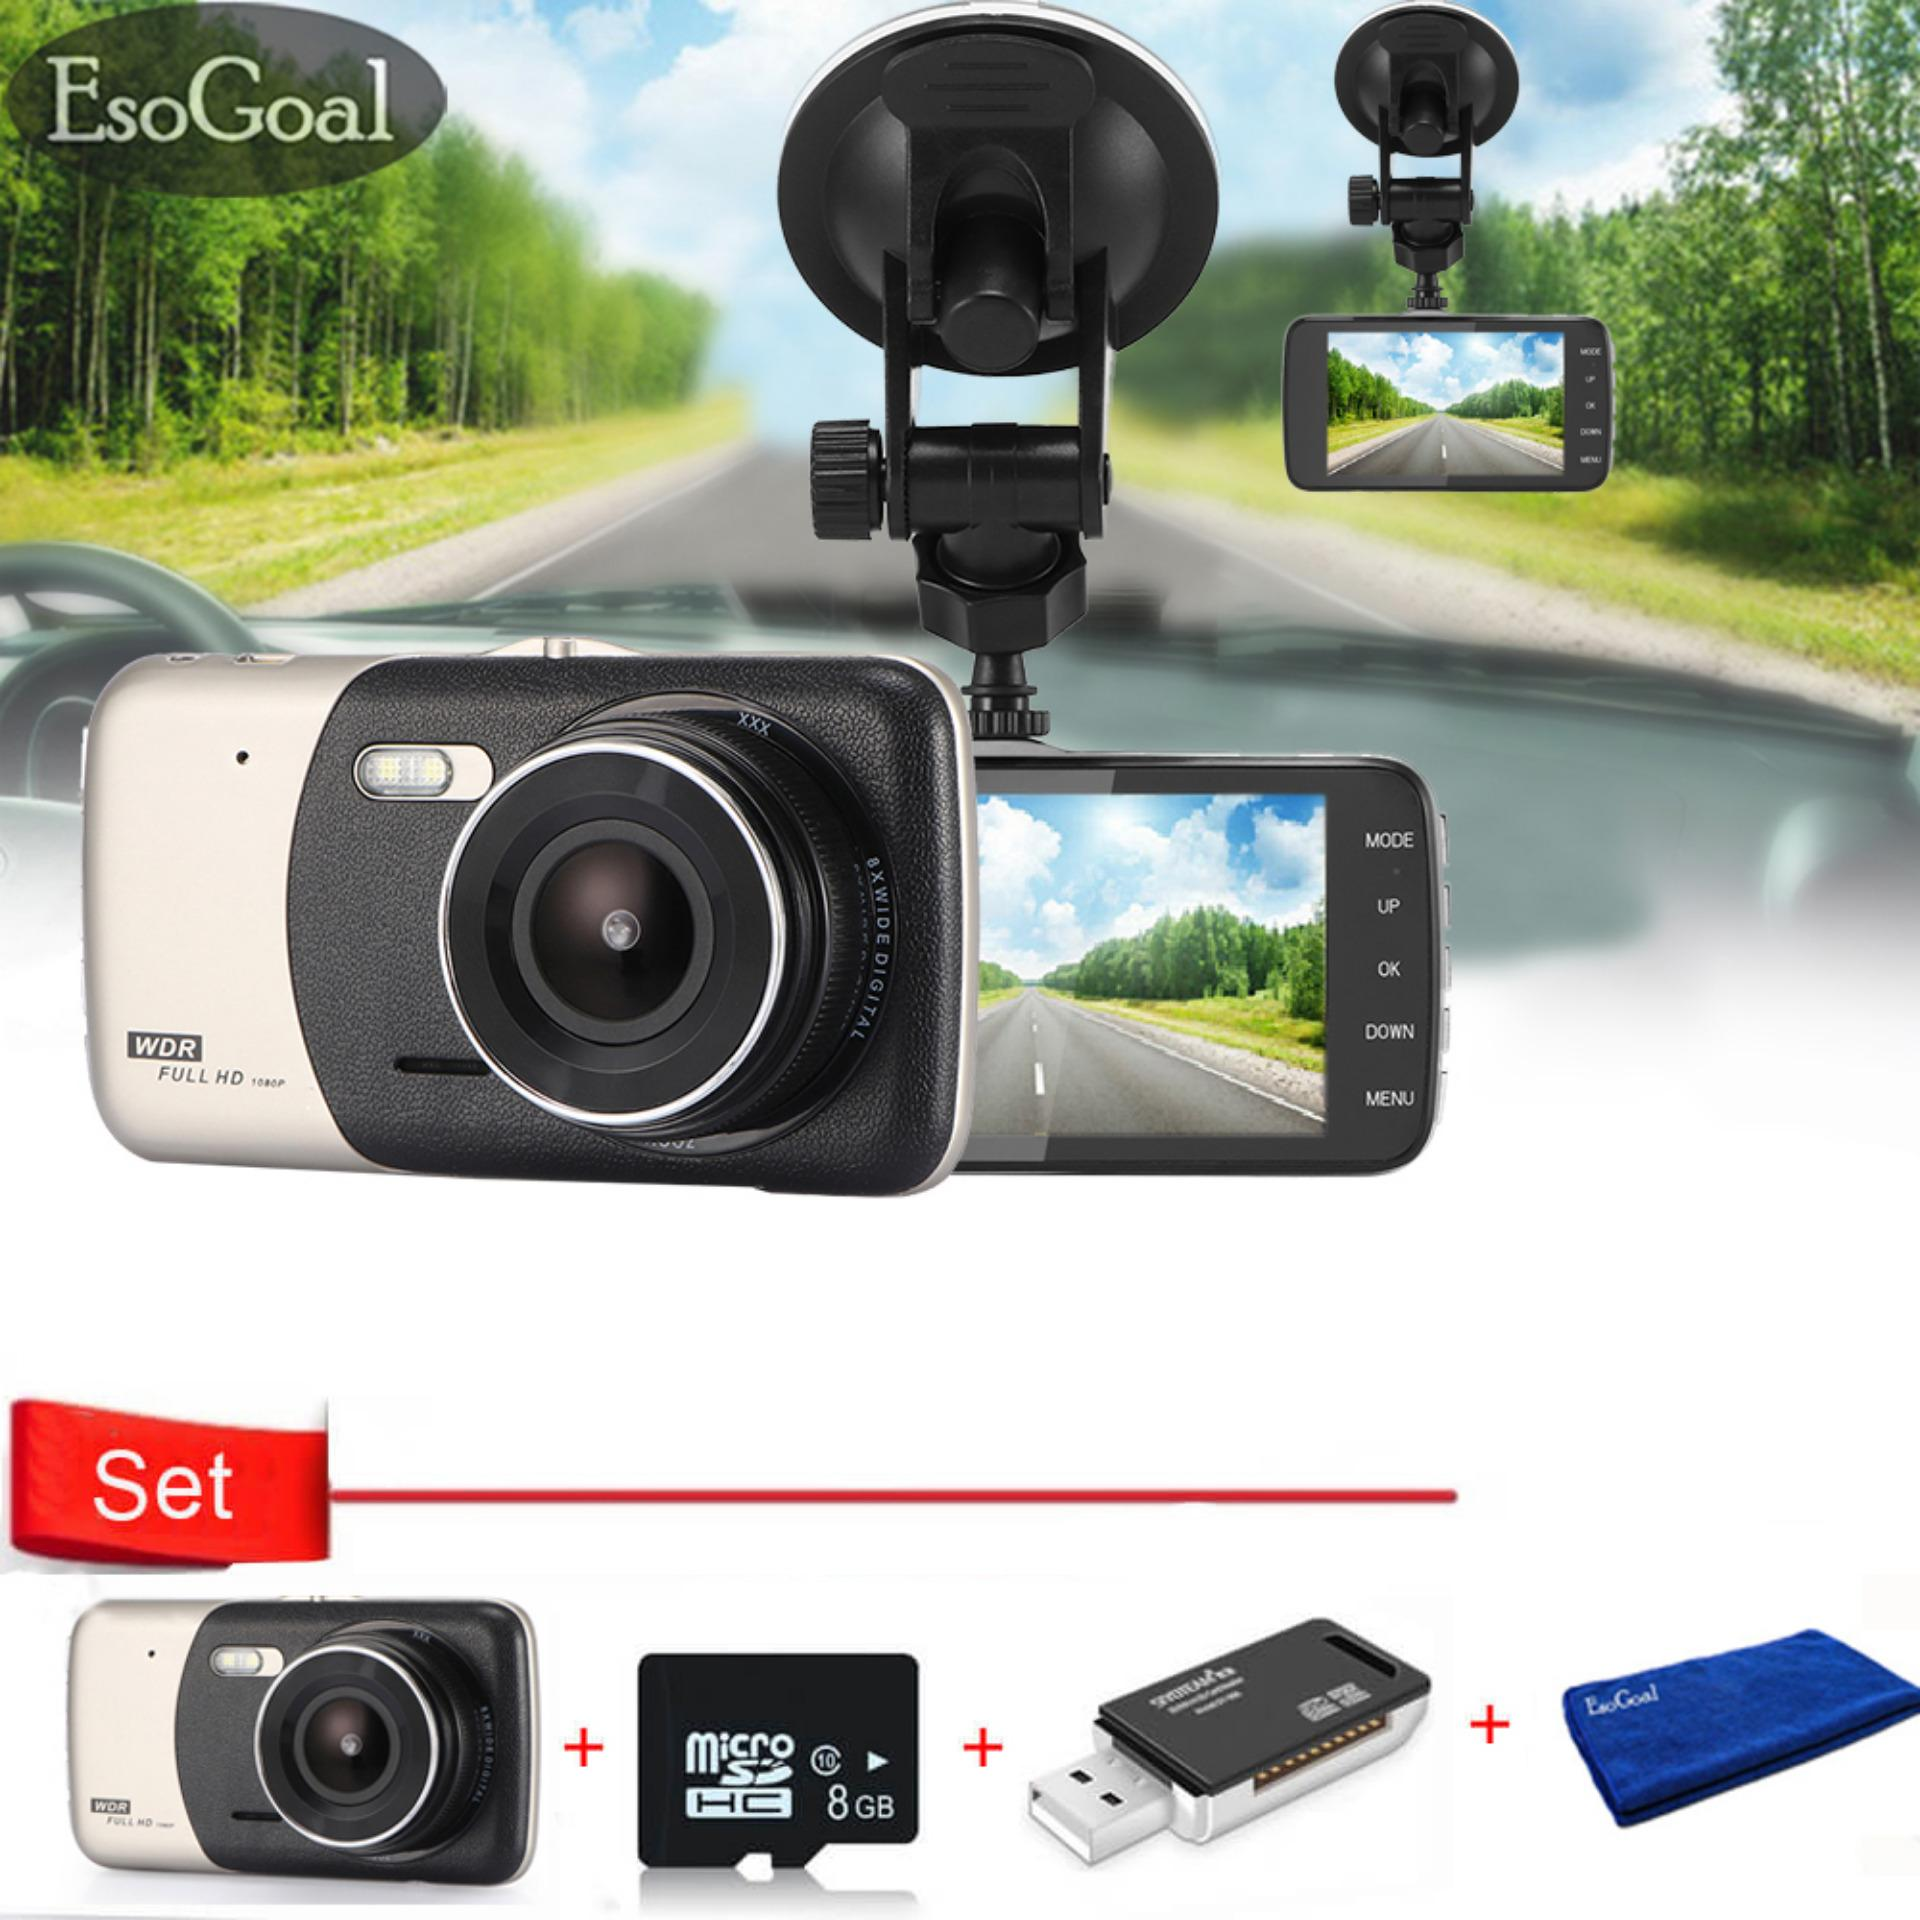 Jual Esogoal 4 Dash Cam Front And Rear Dual Lens Camera Night Vision 1080P 140 Car Dvr Video Recorder G Sensor Vehicle Camera And Micro C 10 8G Memory Card And Usb 2 Sd Card Reader Ori